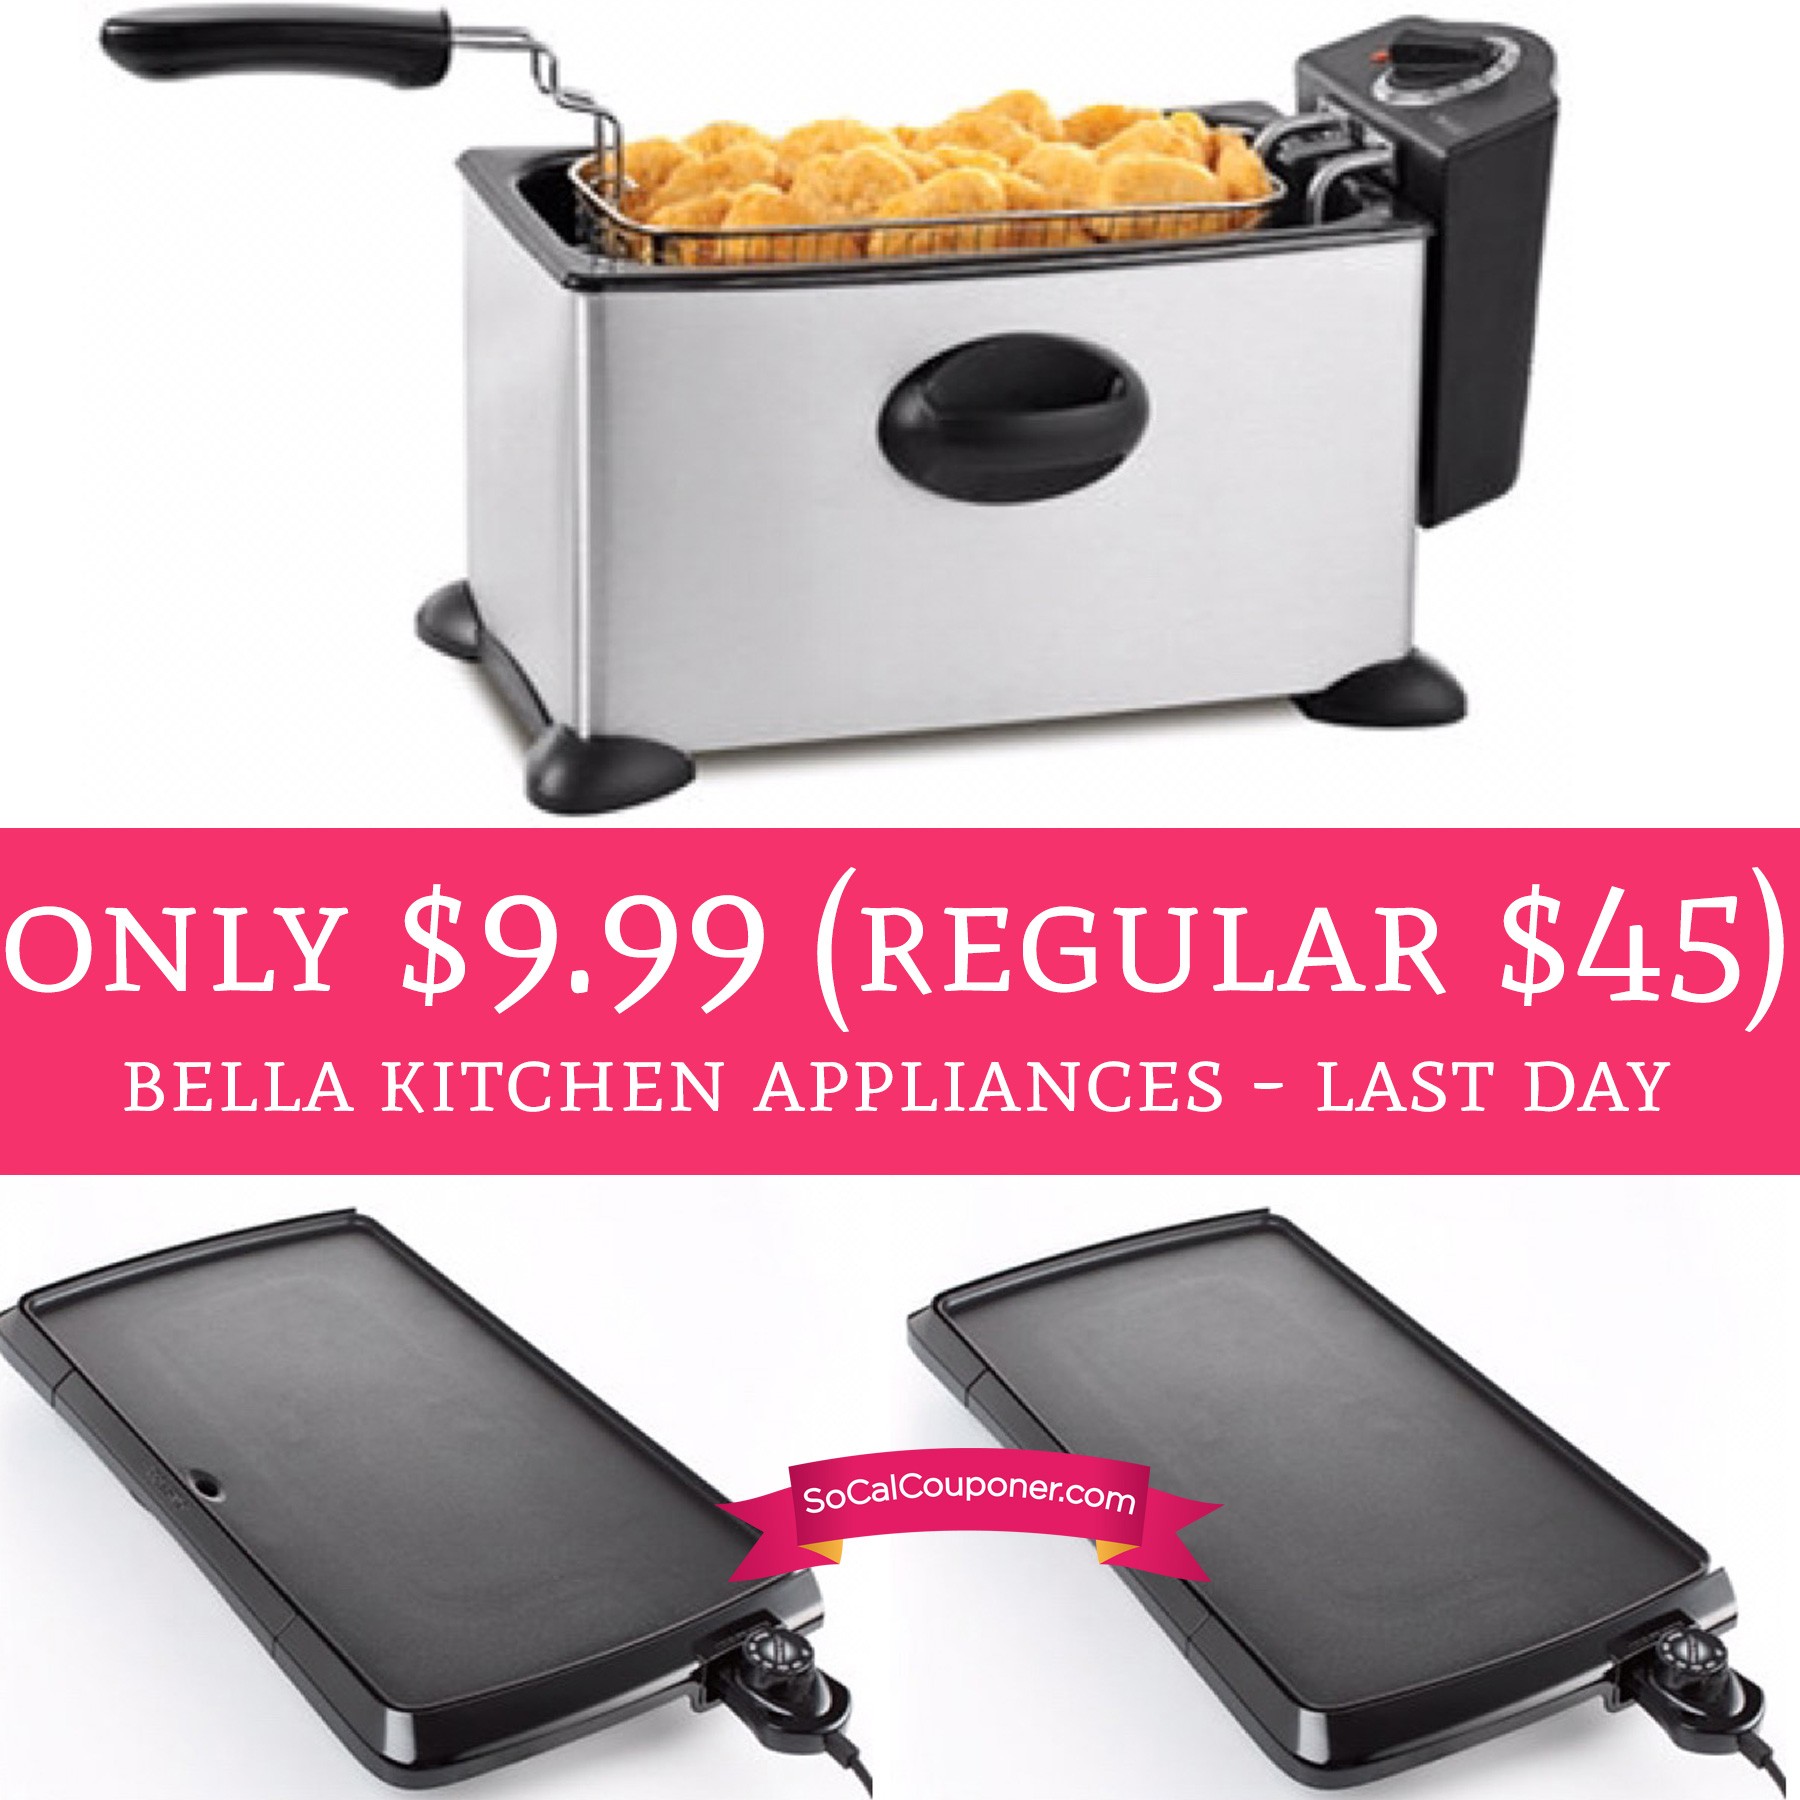 Last Day Only Regular 45 Bella Kitchen Appliances Deal Hunting Babe